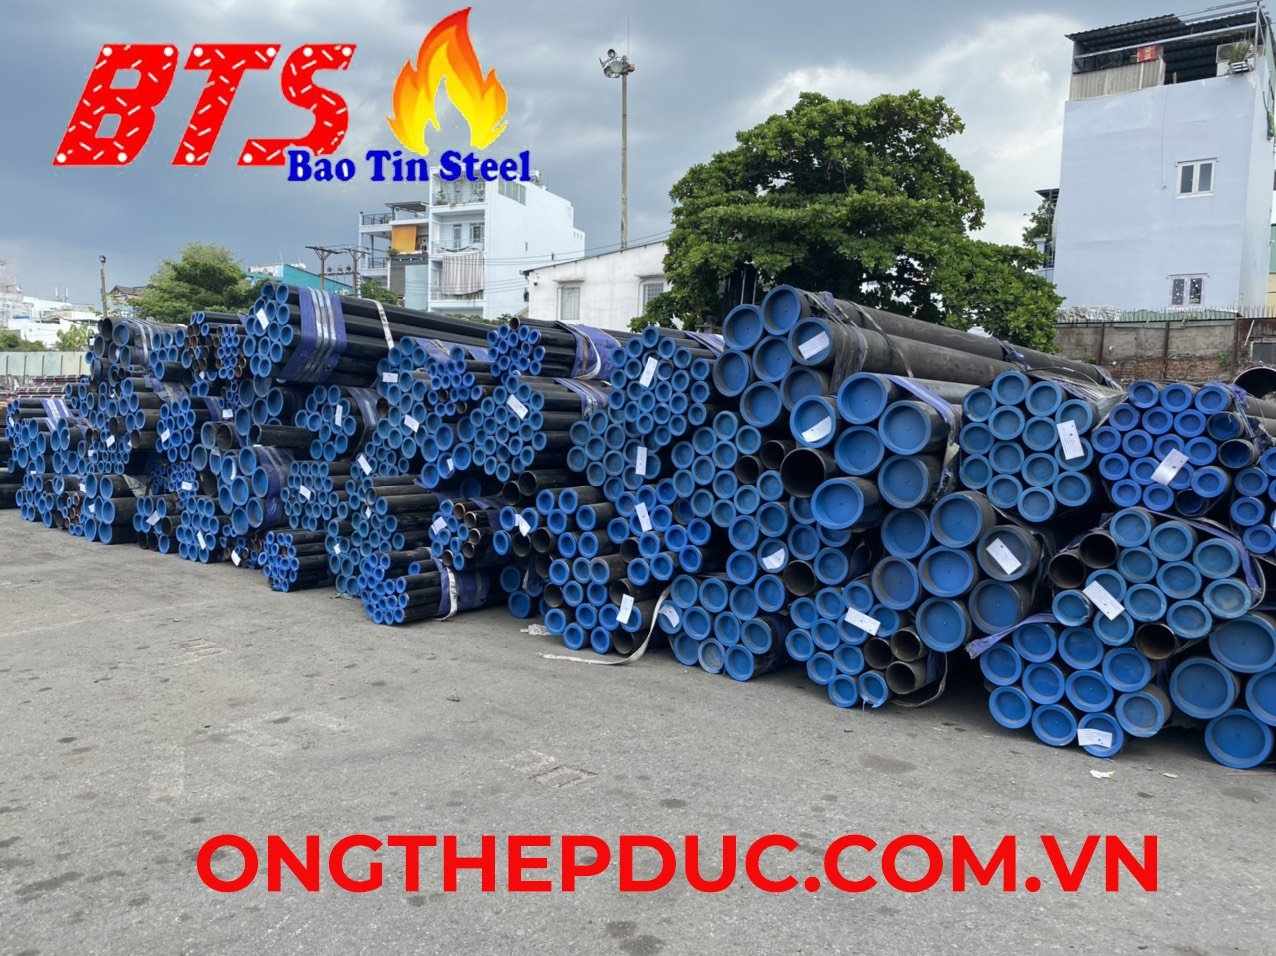 ong duc phi 323.8 x day 17.48mm